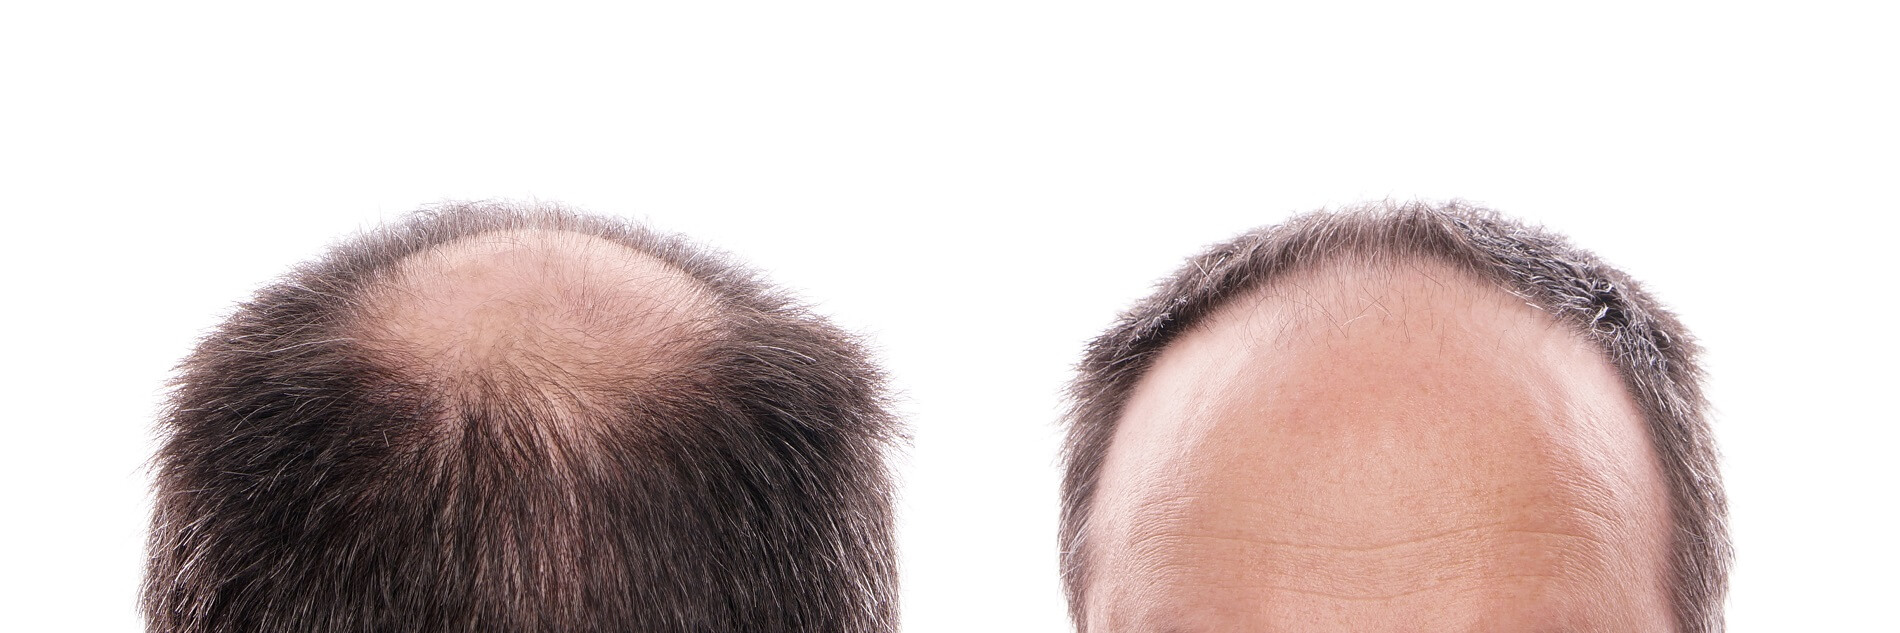 Beard Hair Transplant  in Brazil